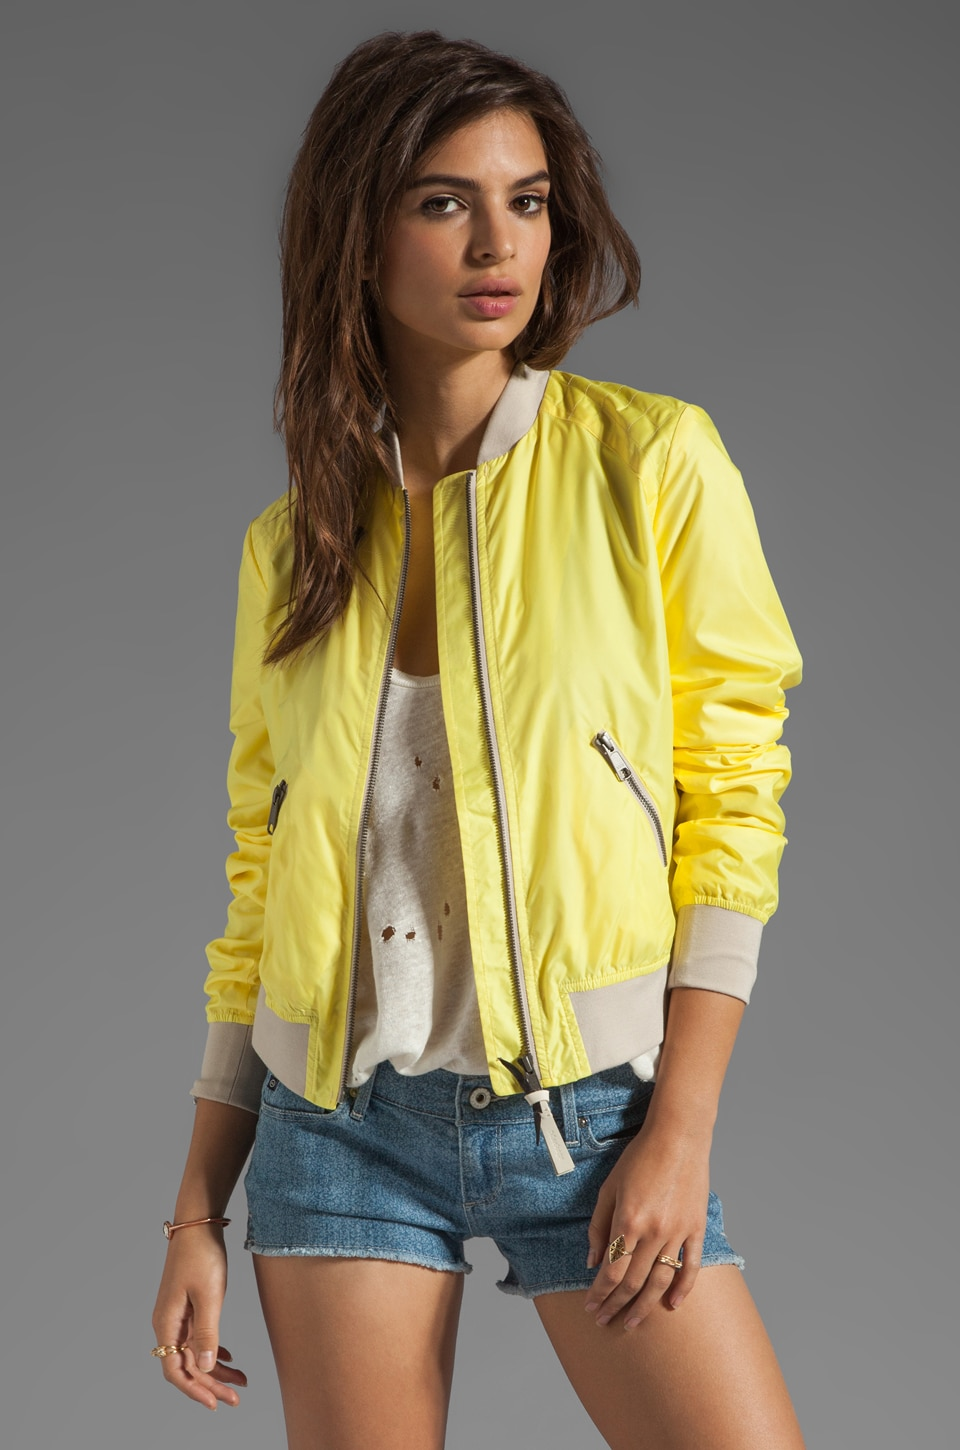 Mackage Meri Packable Rainwear Jacket in Neon Yellow